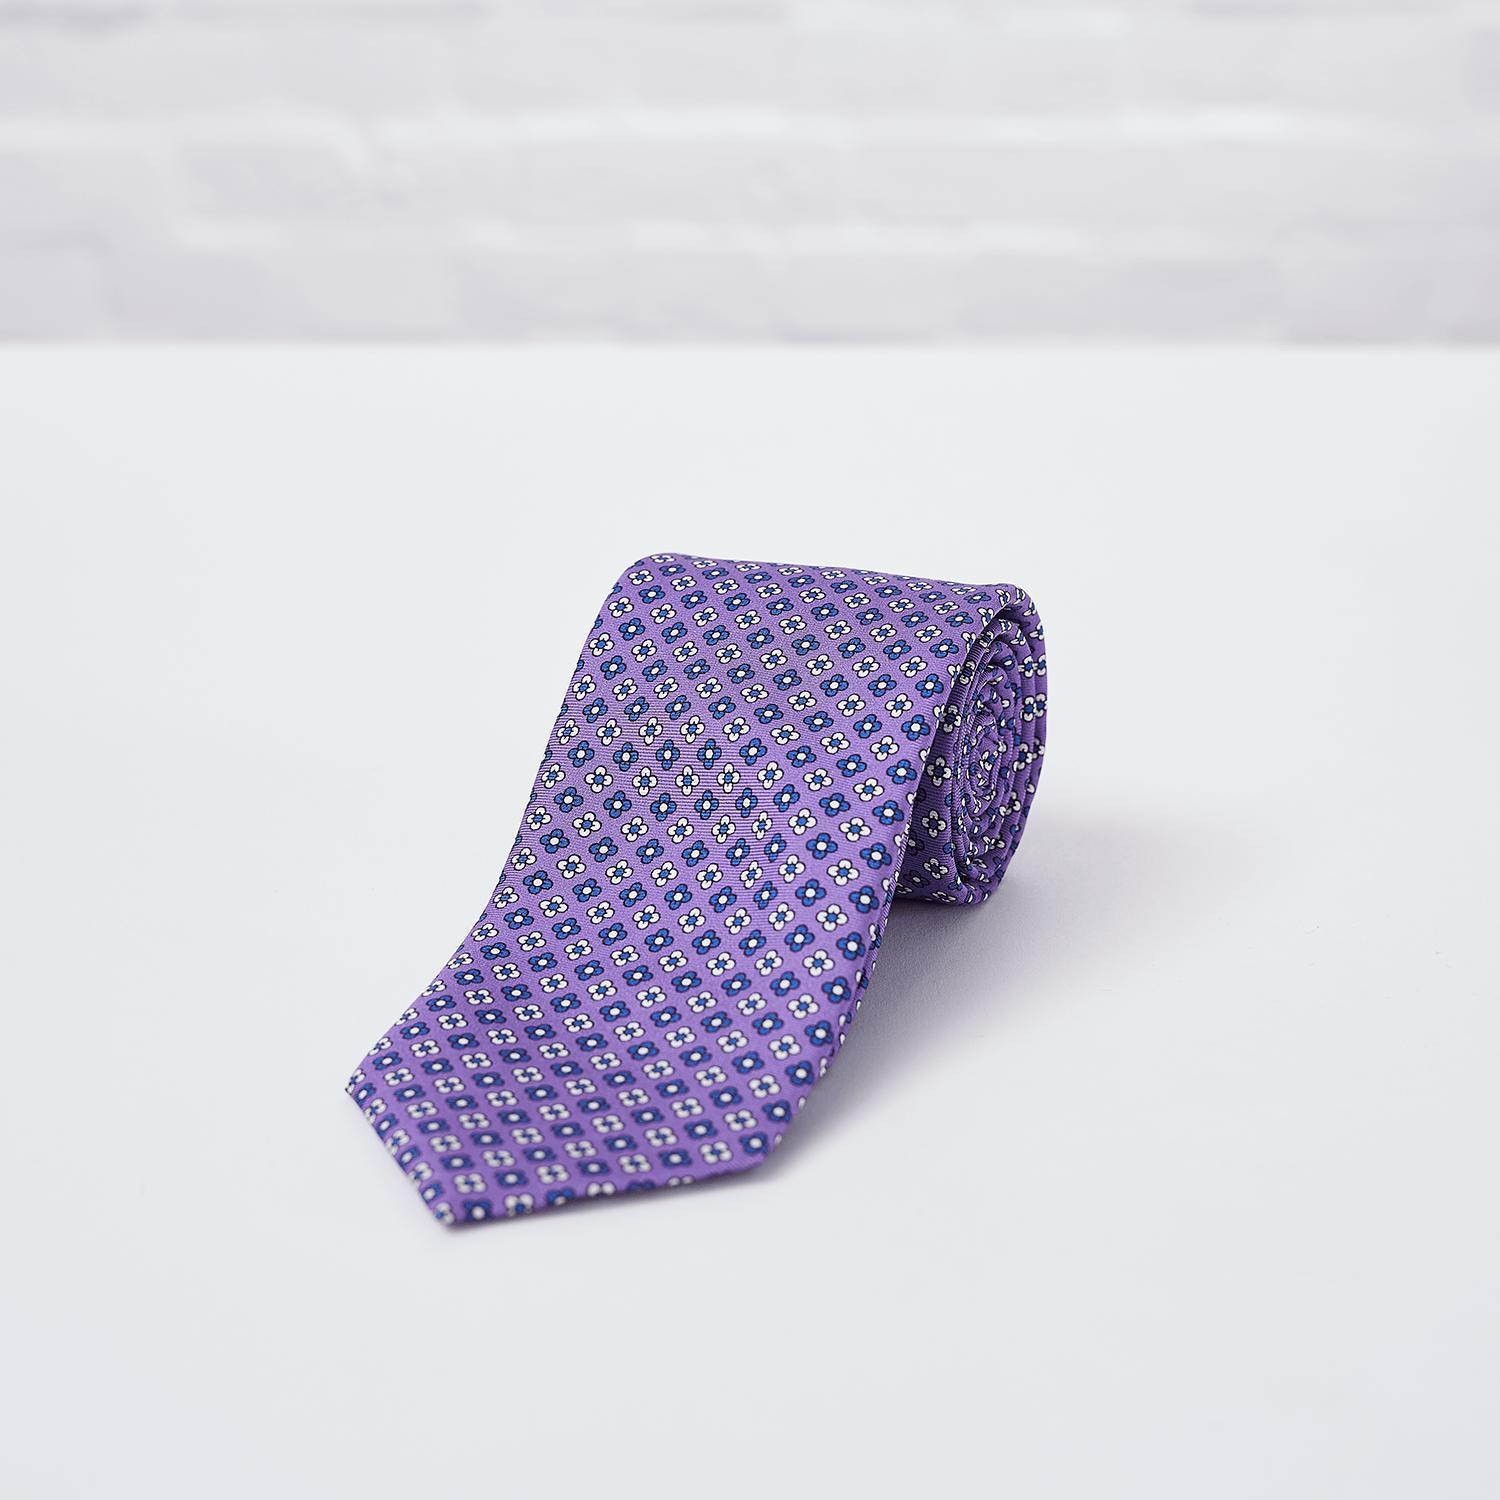 Mauve Floral Printed Silk Tie - British Made